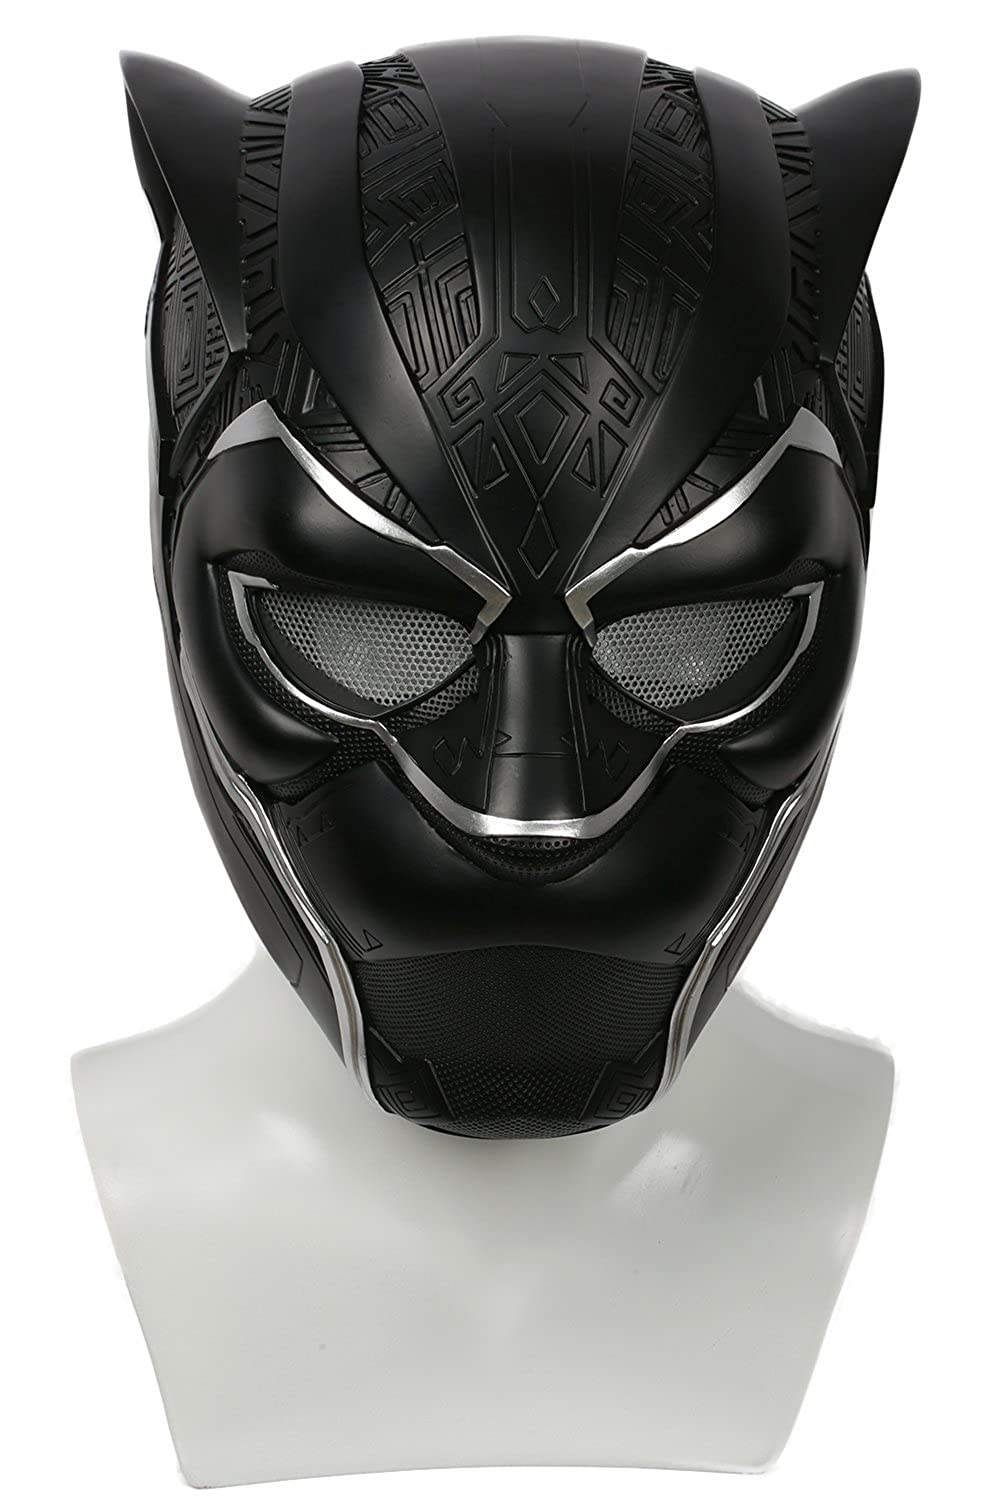 Black Panther Mask Civil Wars Deluxe PVC Helmet Captain Cosplay Costume Adult Xcoser